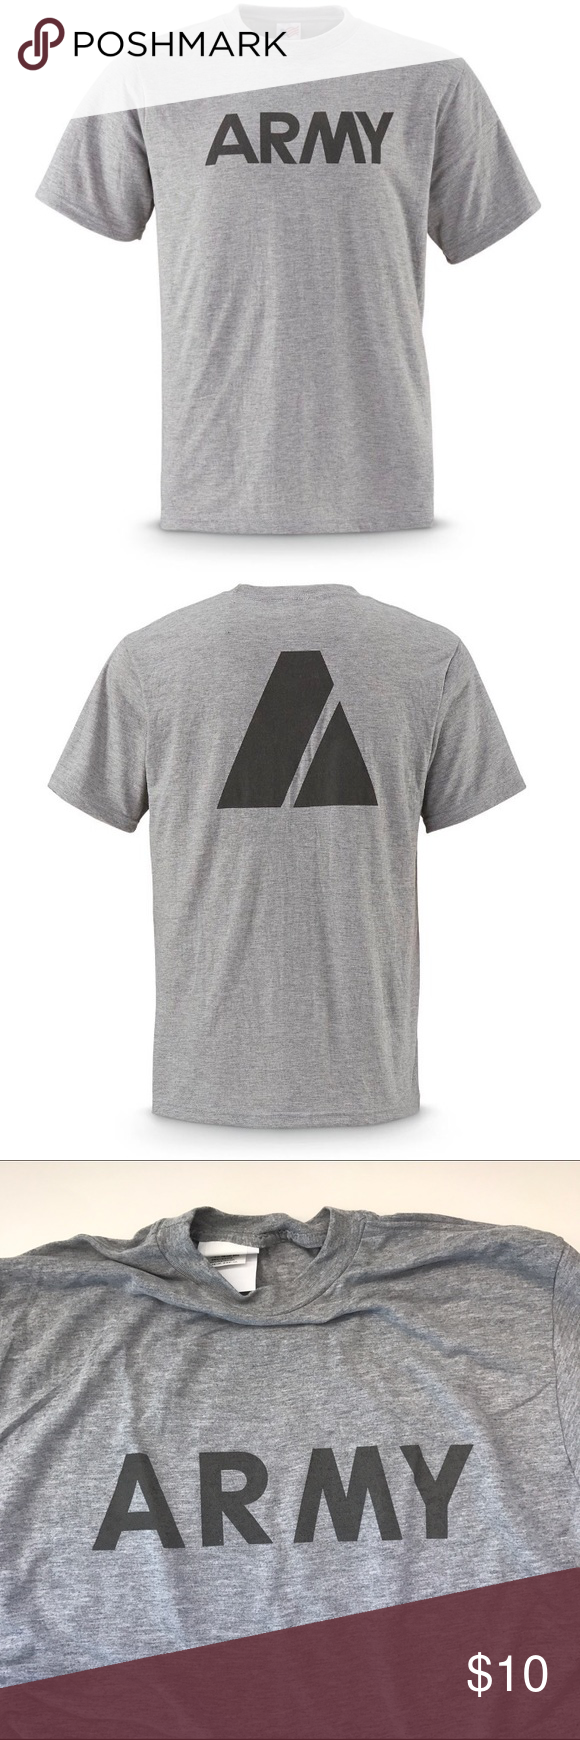 Authentic Army PT shirt Short sleeve gray authentic Army PT shirts. 2 Large available. Brand new in package. Shirts Tees - Short Sleeve